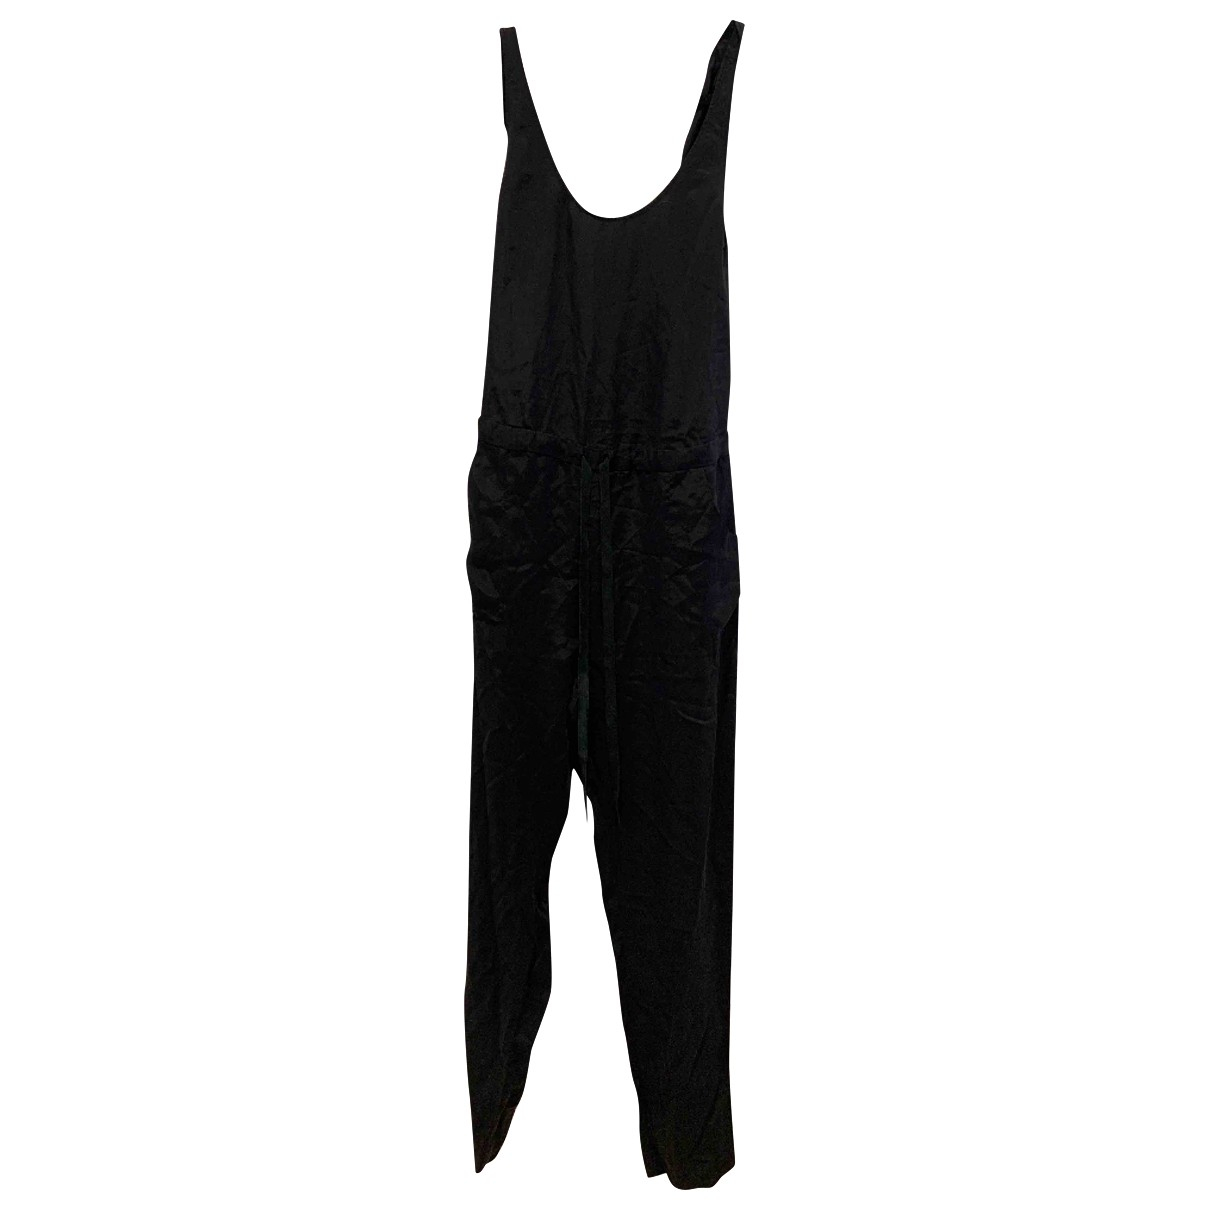 Rebecca Taylor \N Black Leather jumpsuit for Women 6 US